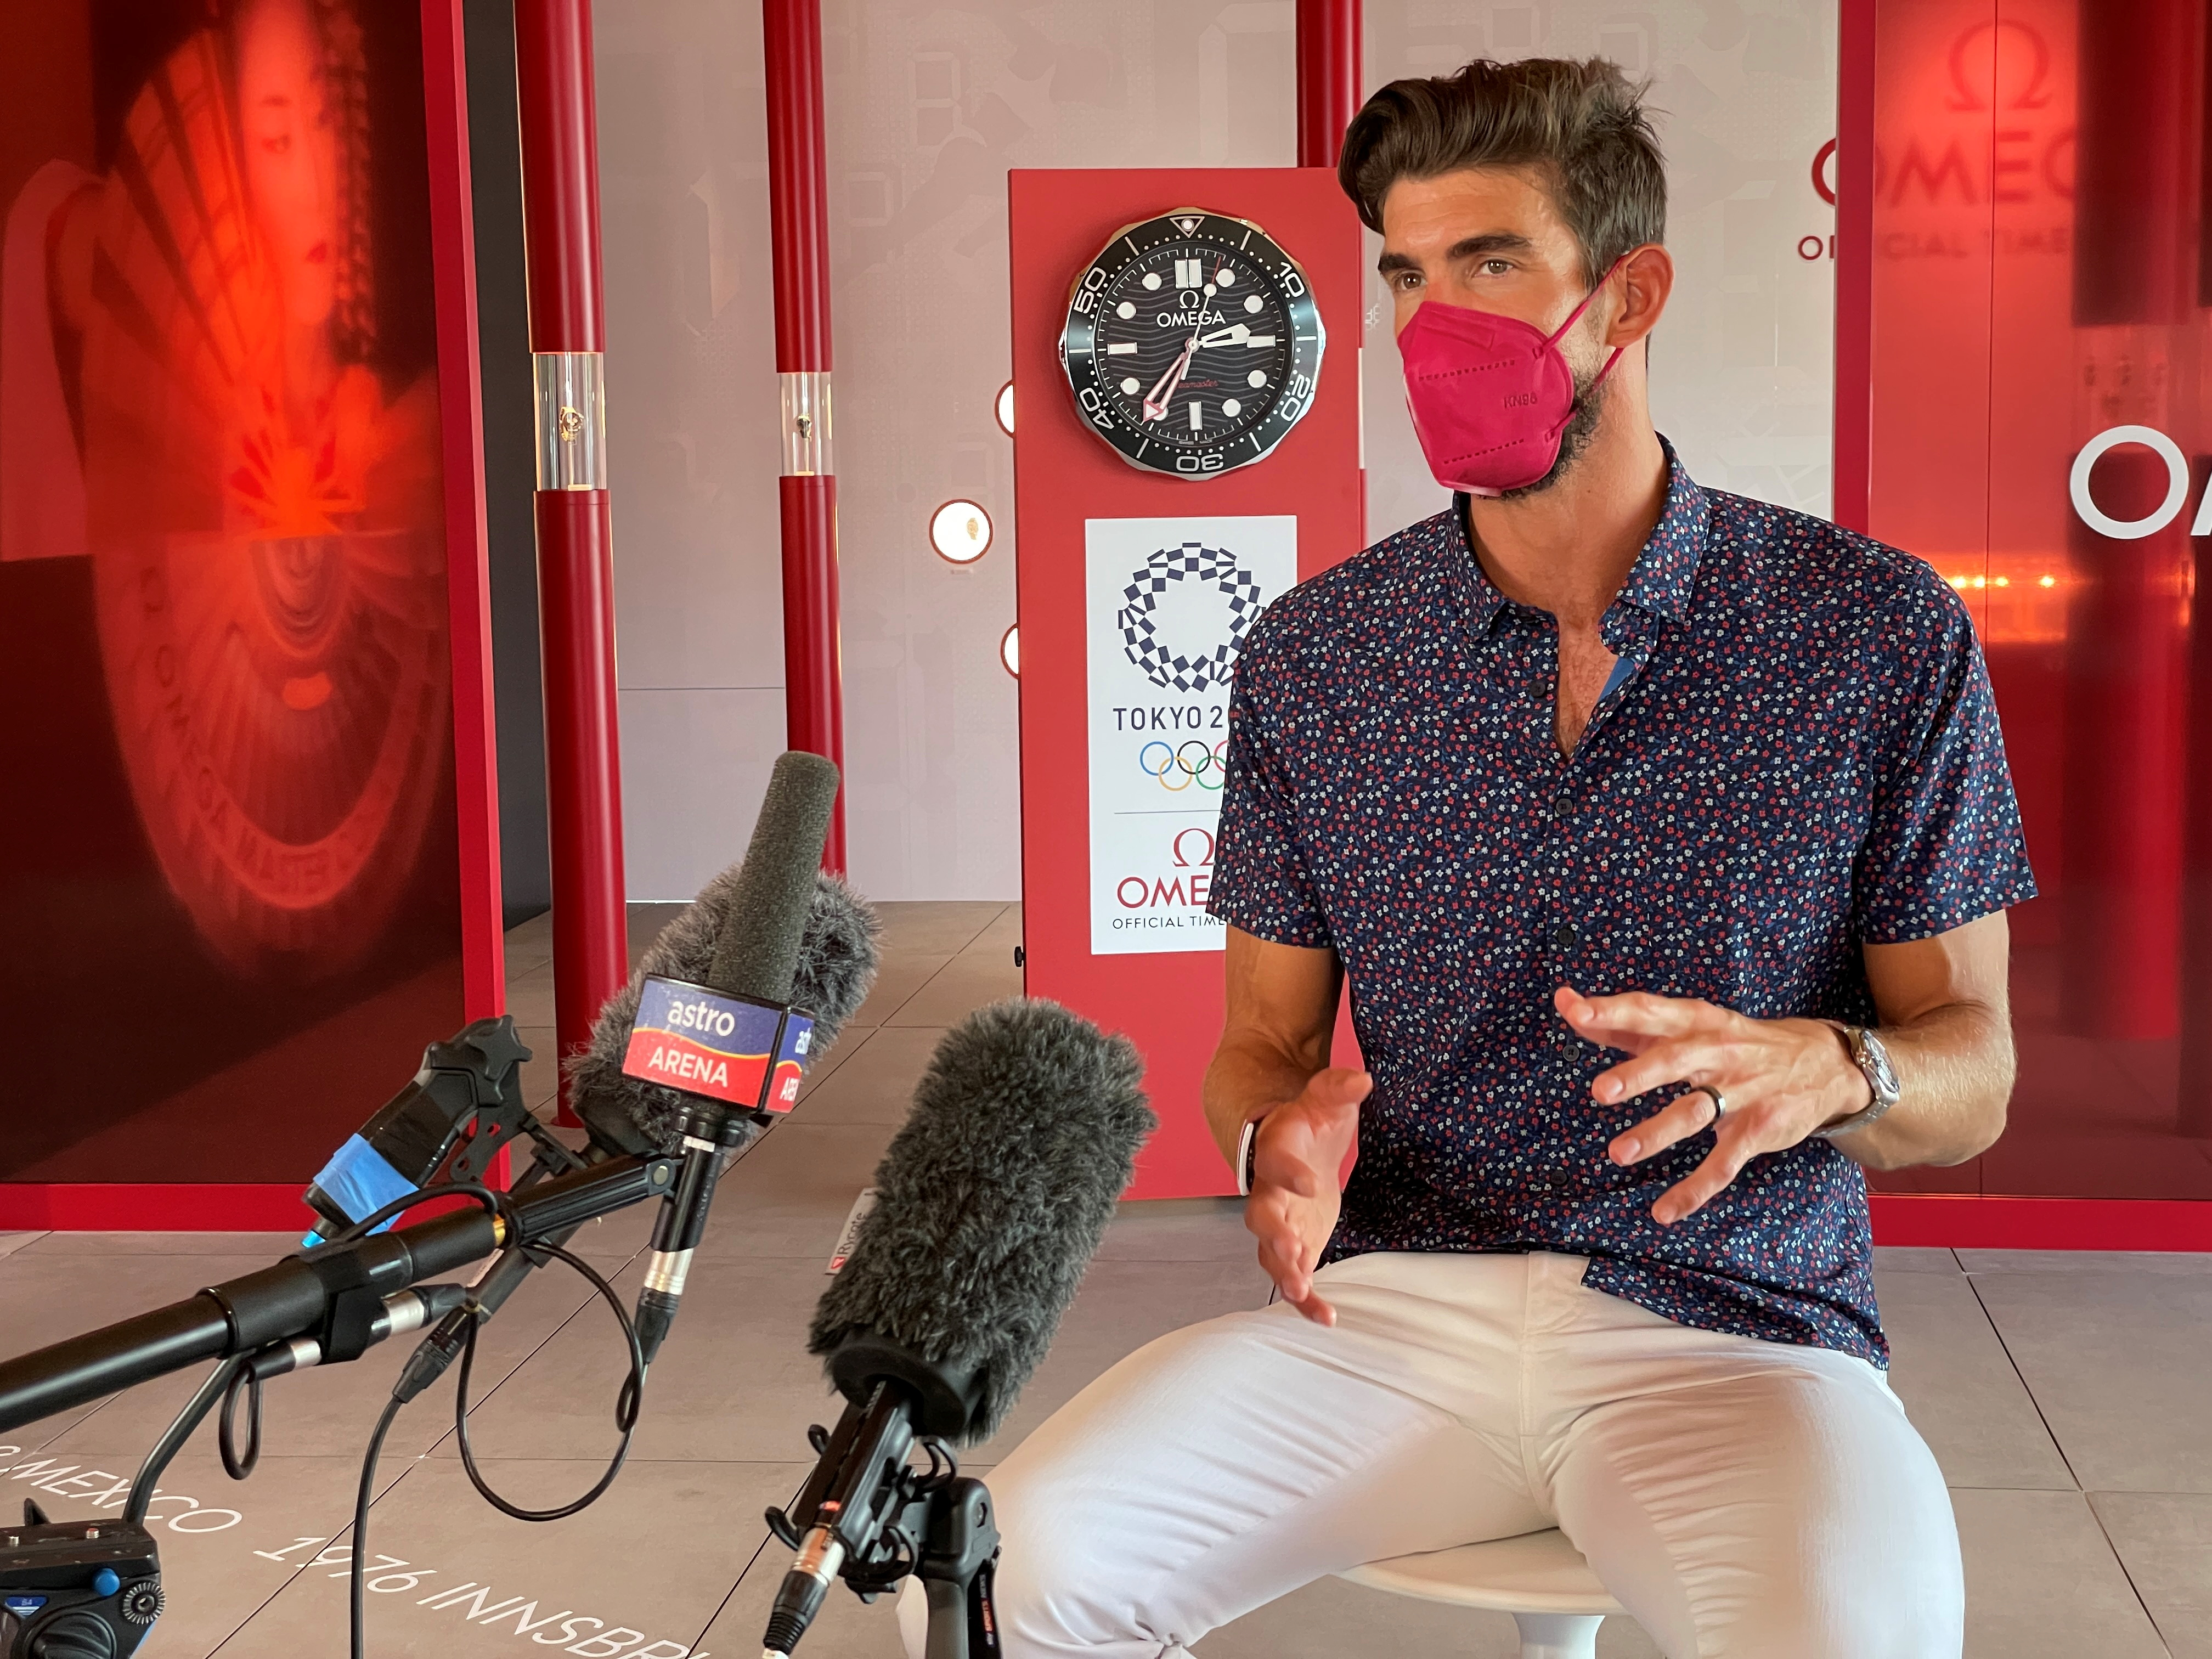 U.S. Olympic gold medalist Michael Phelps speaks during an interview with journalists on the sidelines of the Olympic Games in Tokyo, Japan July 25, 2021. REUTERS/Nathan Frandino